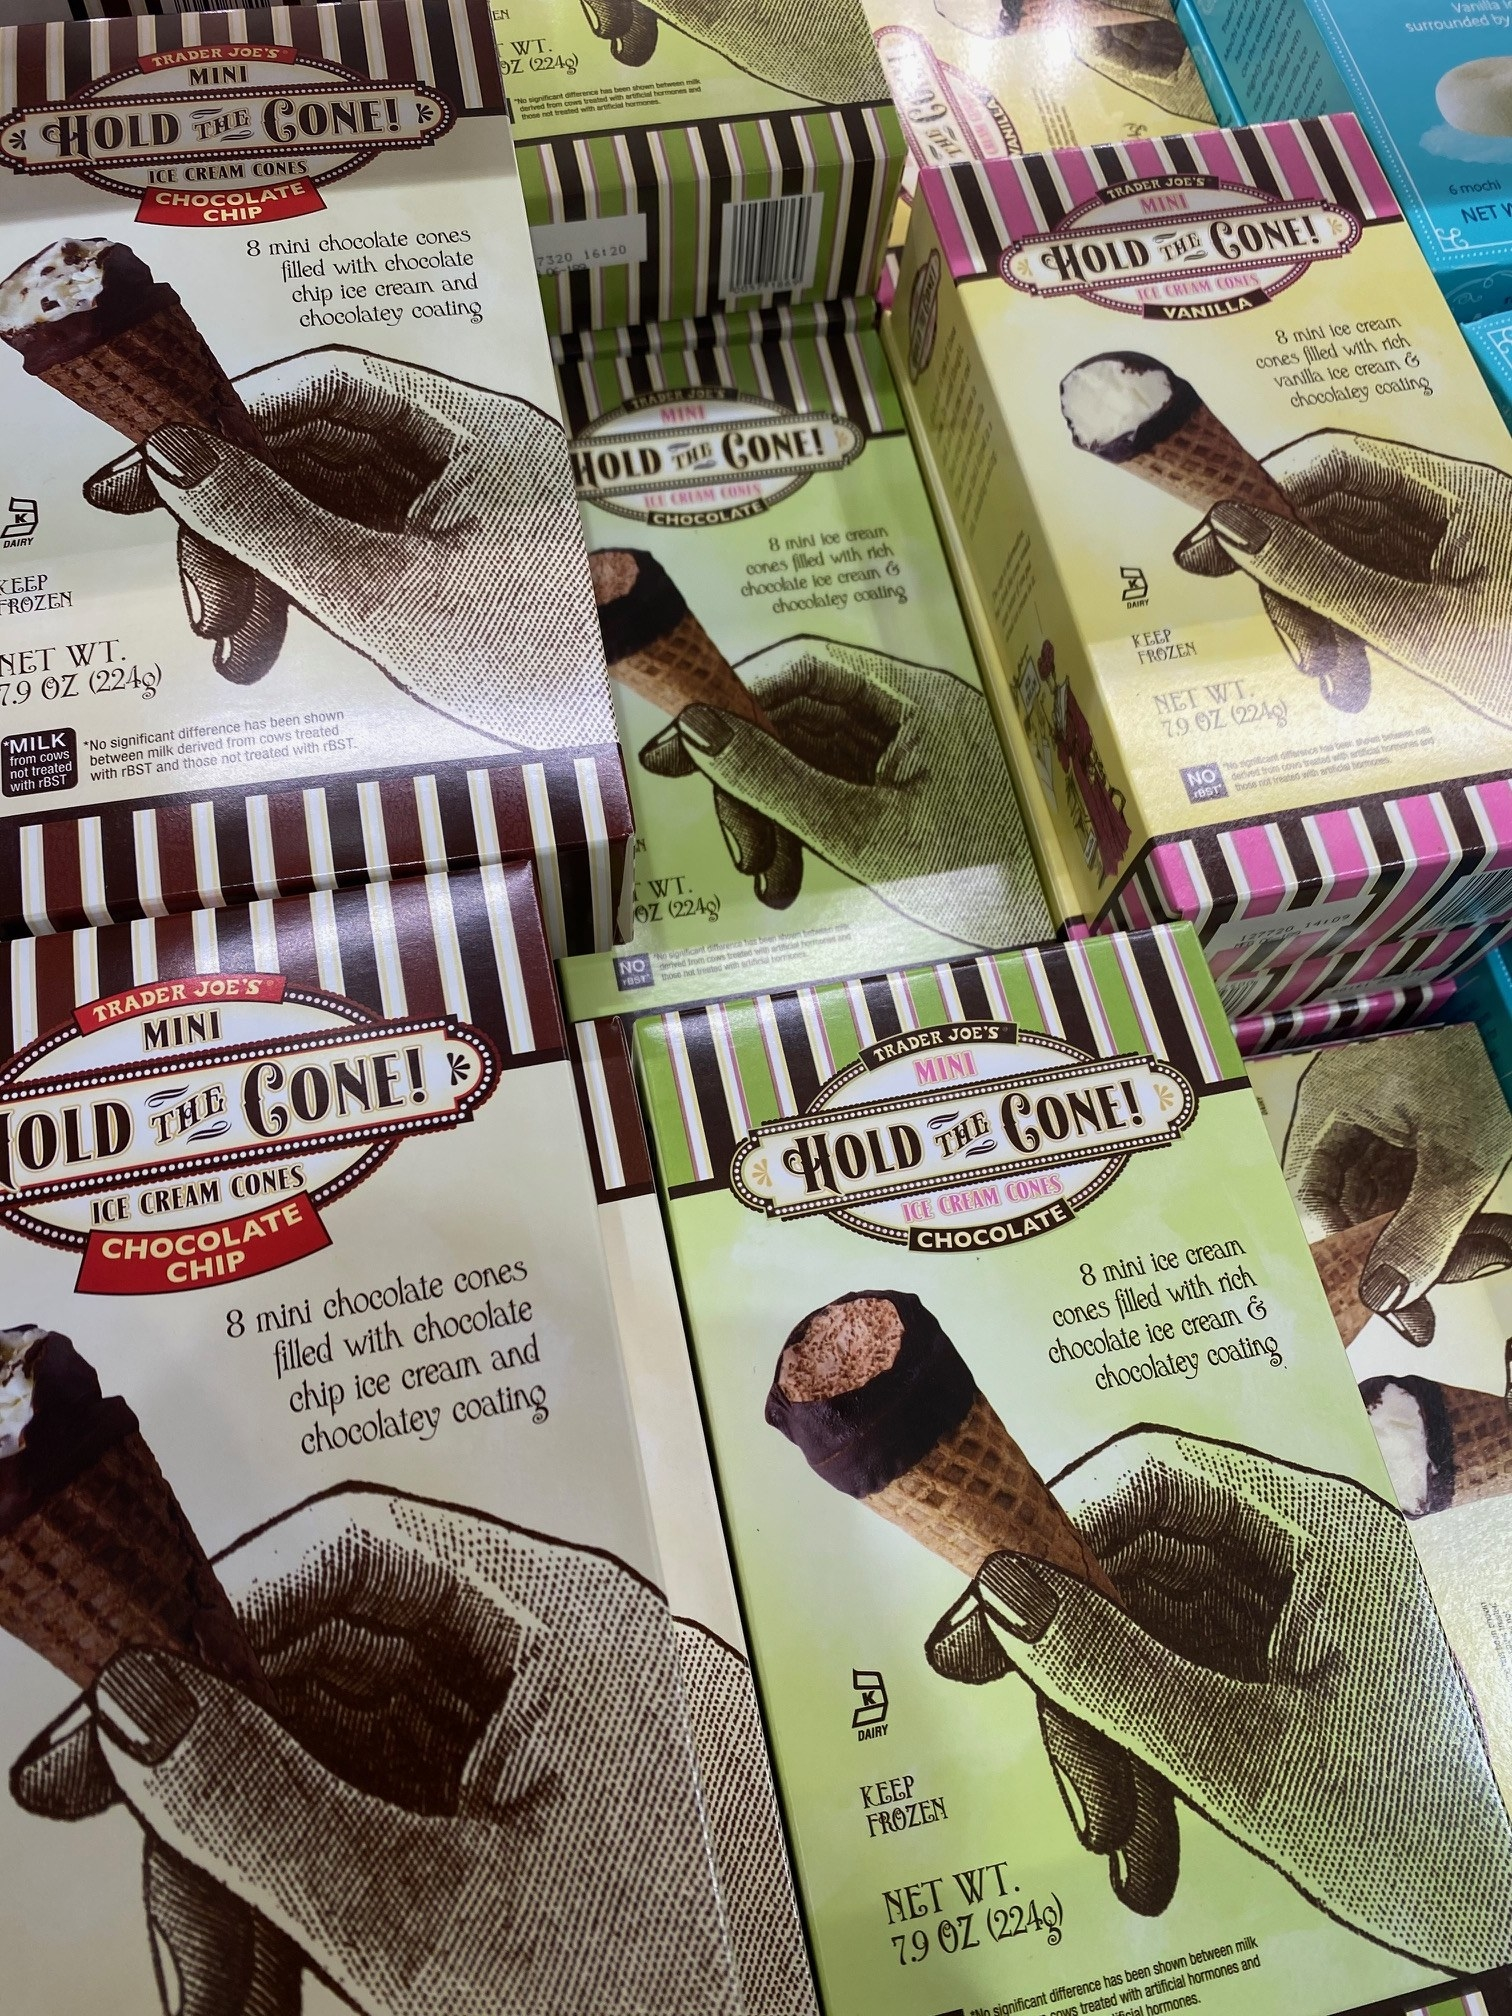 Several boxes of Hold the Cone ice cream cones in various flavors from Trader Joe's.